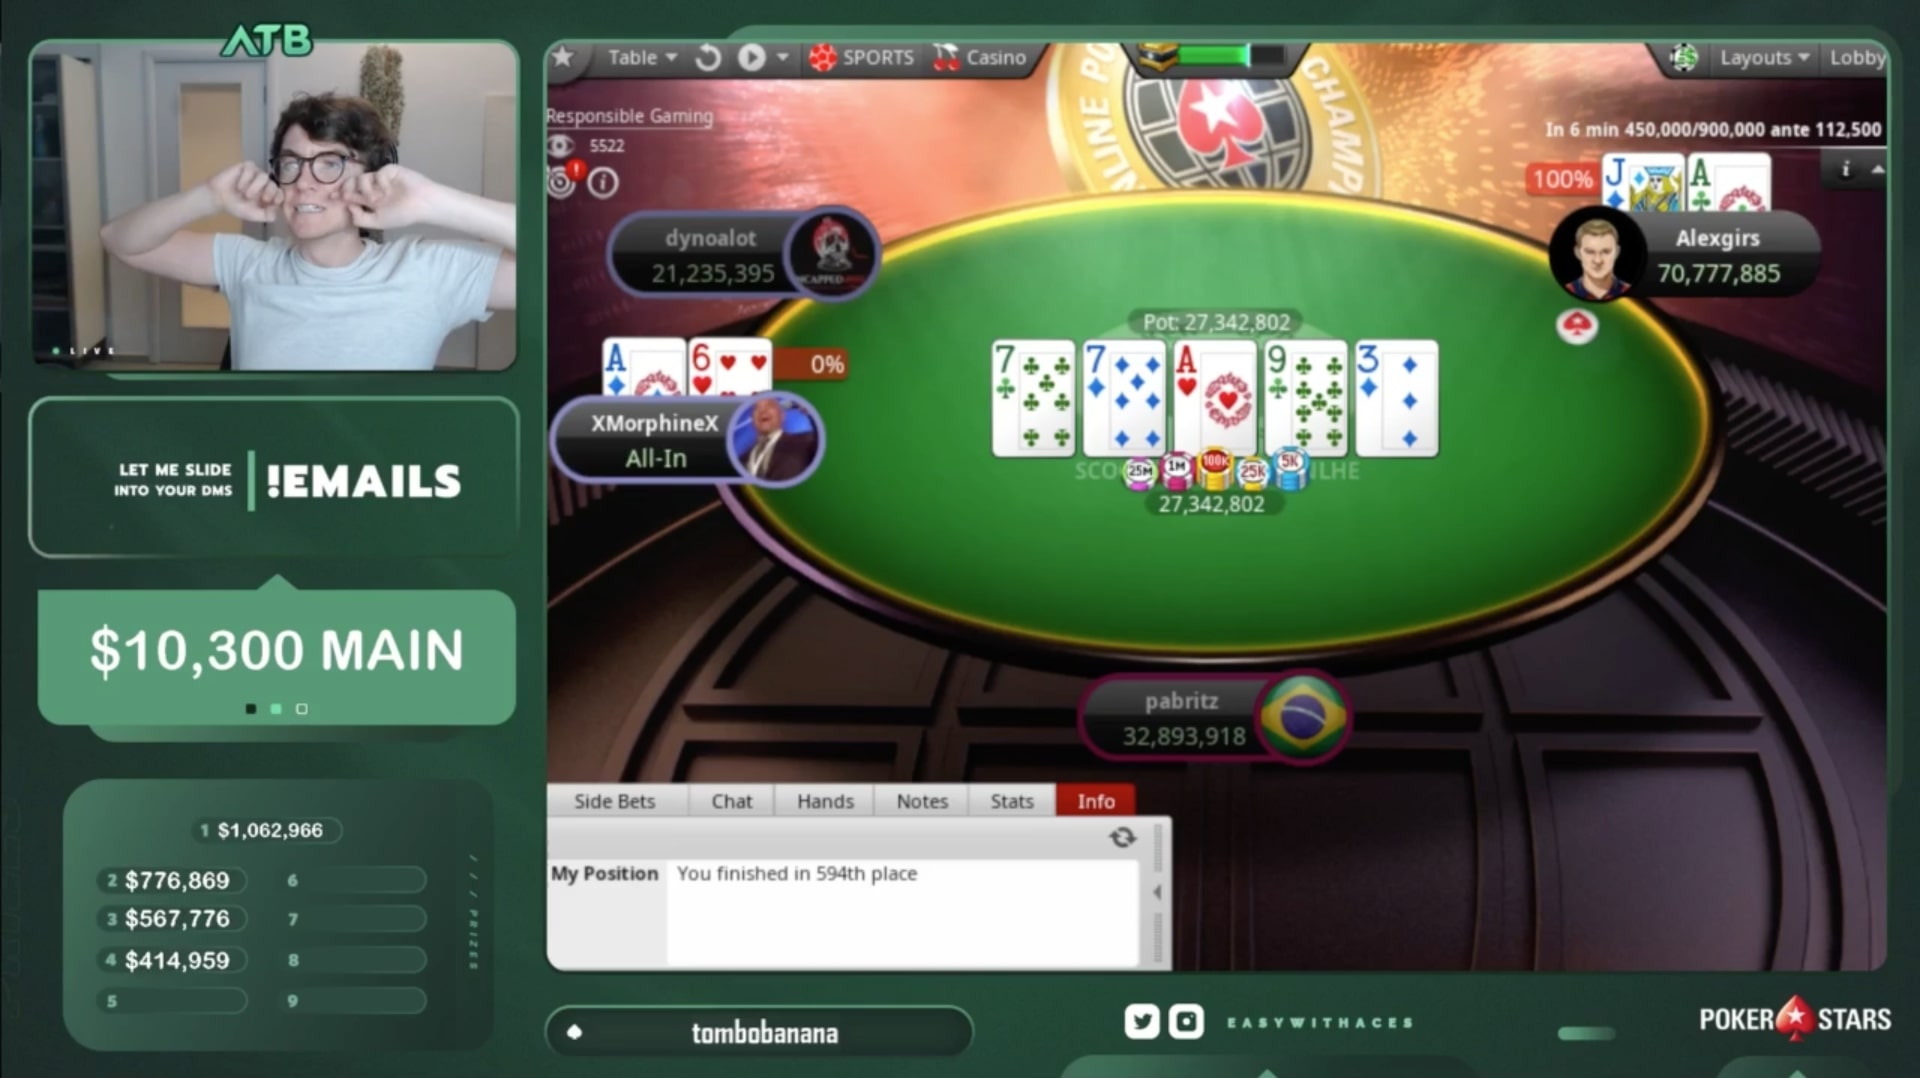 Белорус Александр «alexgirs» Гирс выиграл SCOOP ME на PokerStars и получил $920,595 7